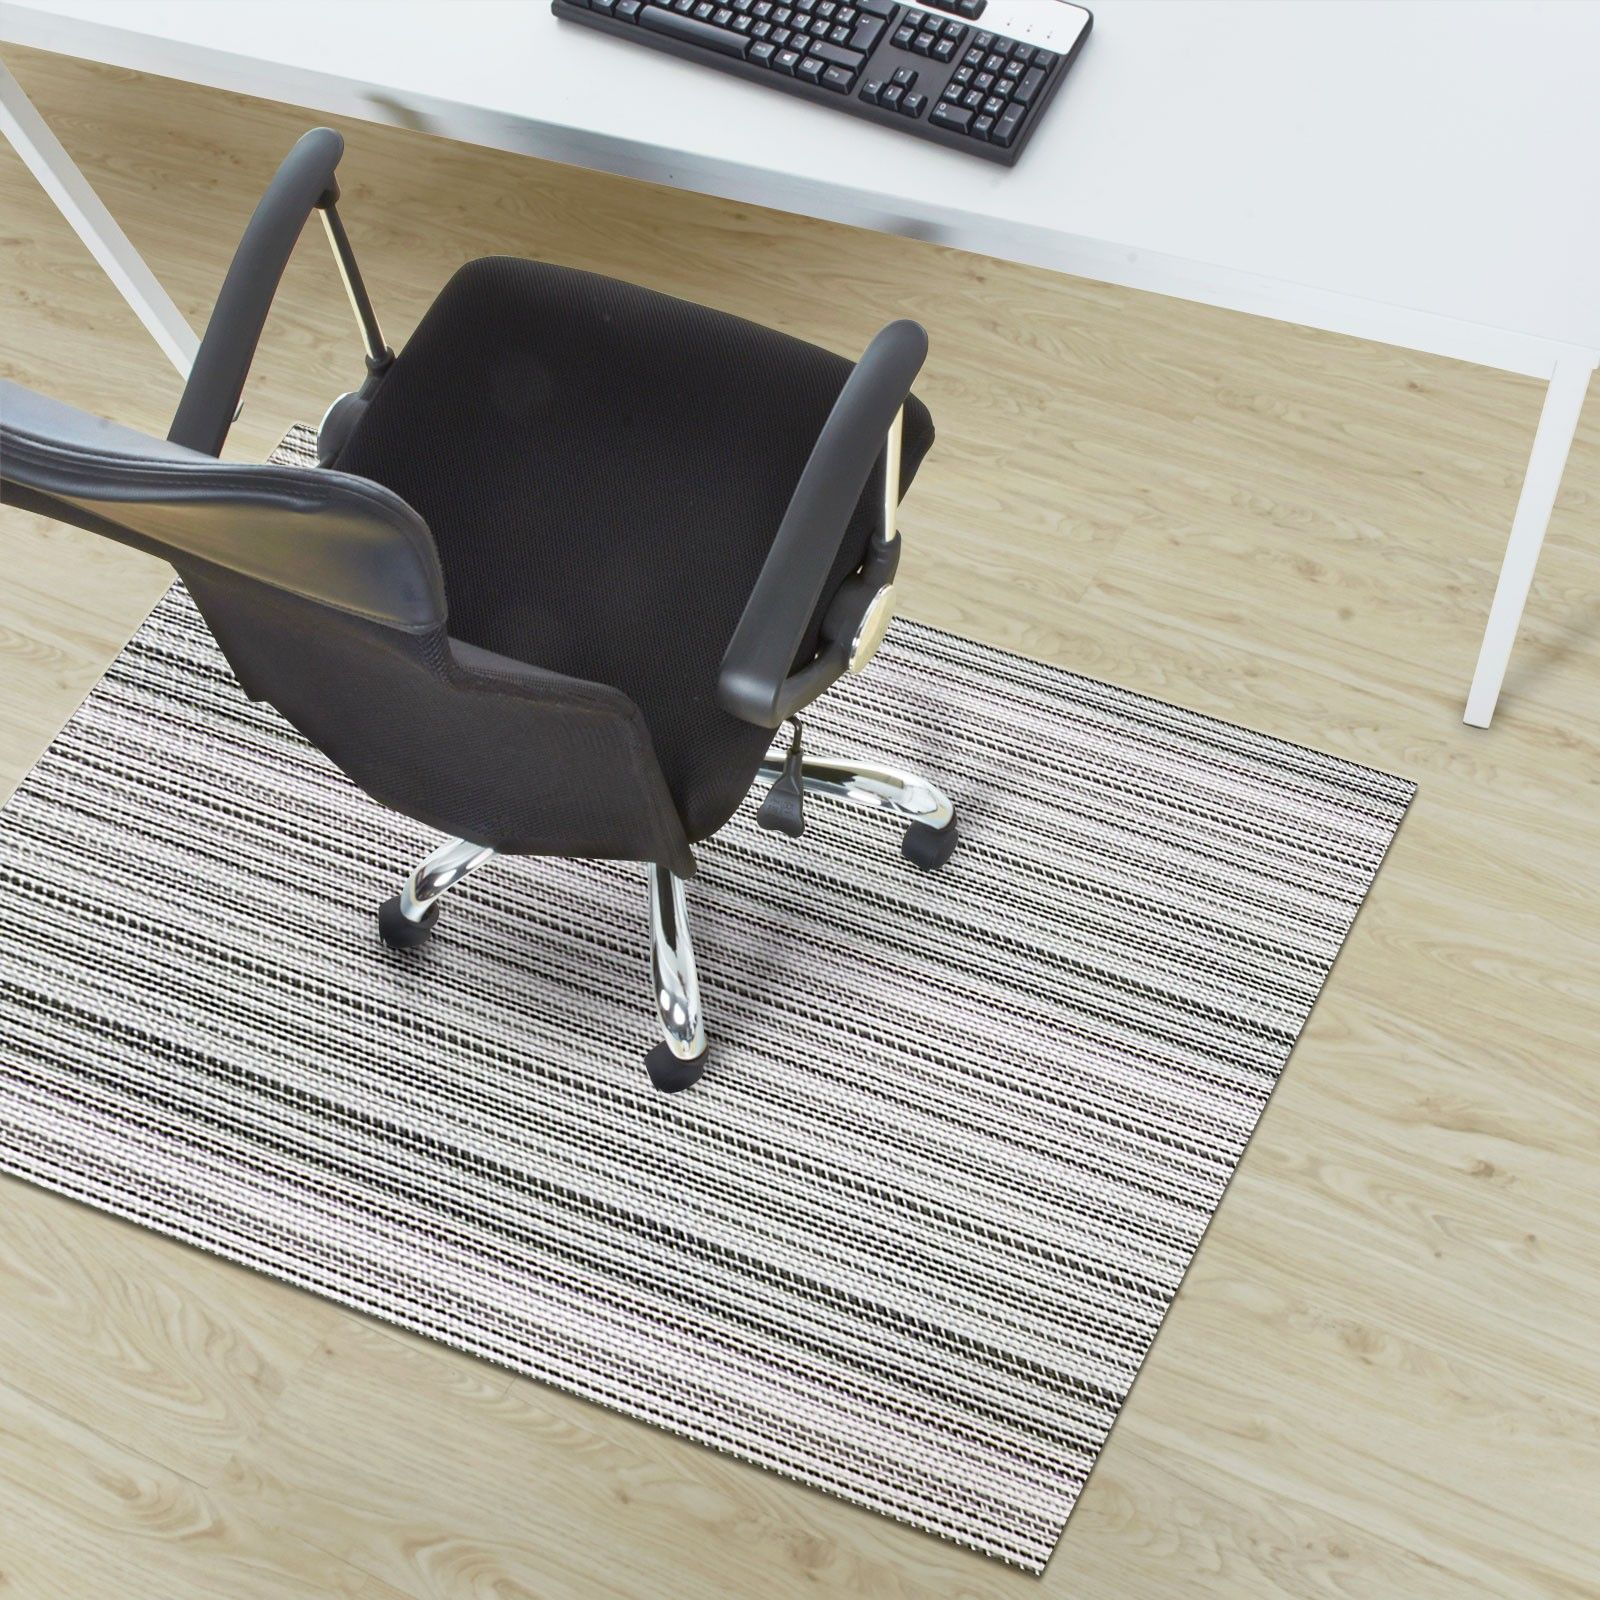 Pvc Chair Mat For Hard Floor And Short Pile Carpets Woven Structured With Non Slip Backing Uv Resistant Properties